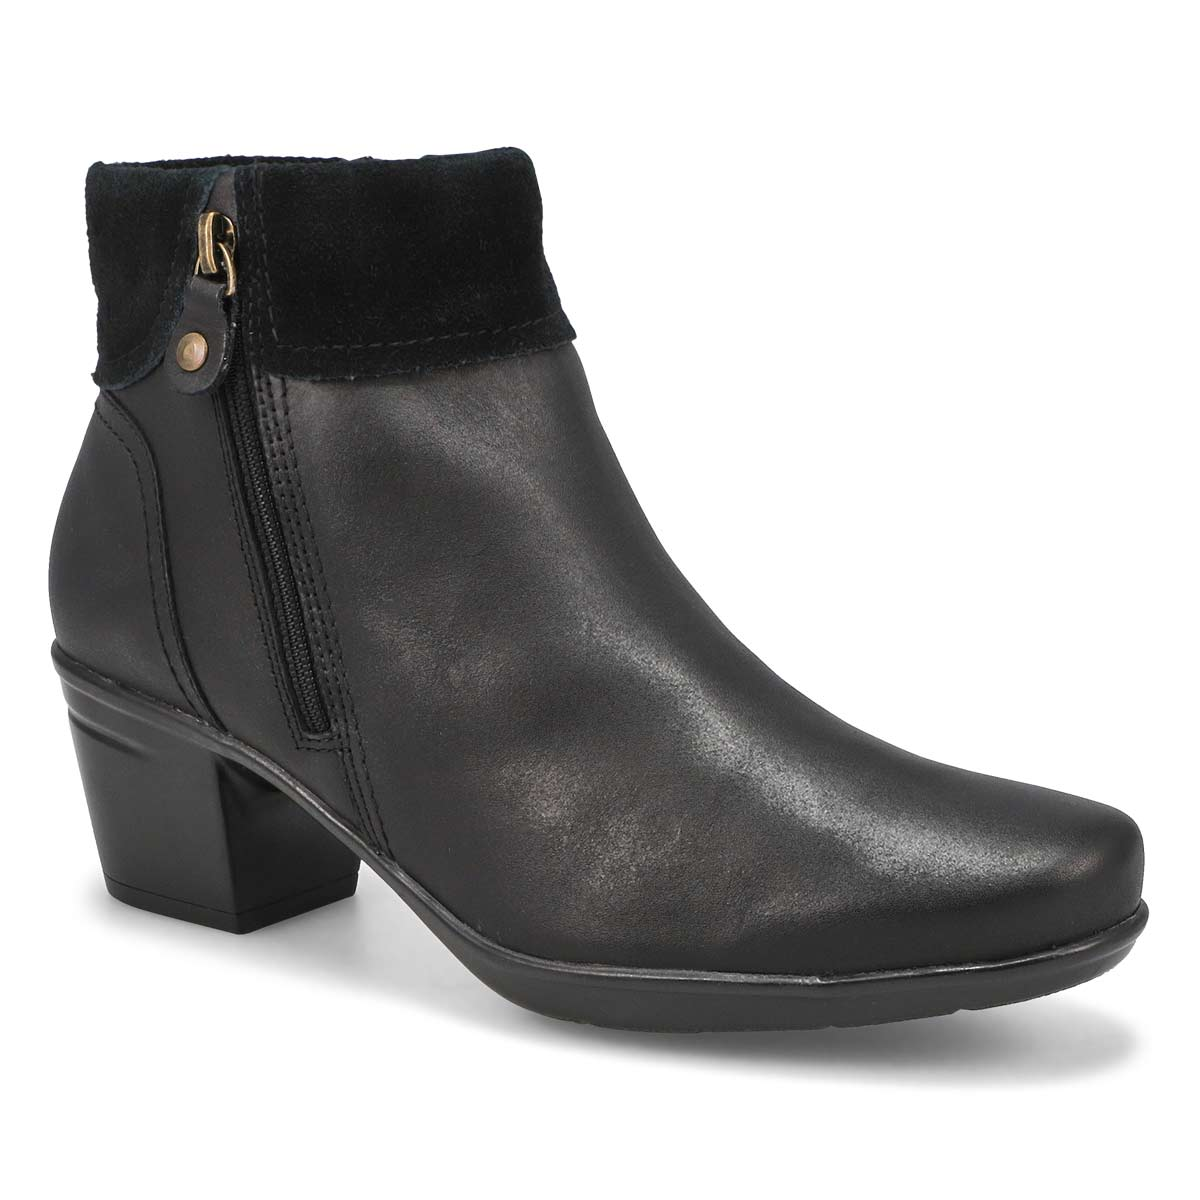 Lds Emslie Twist black ankle boot